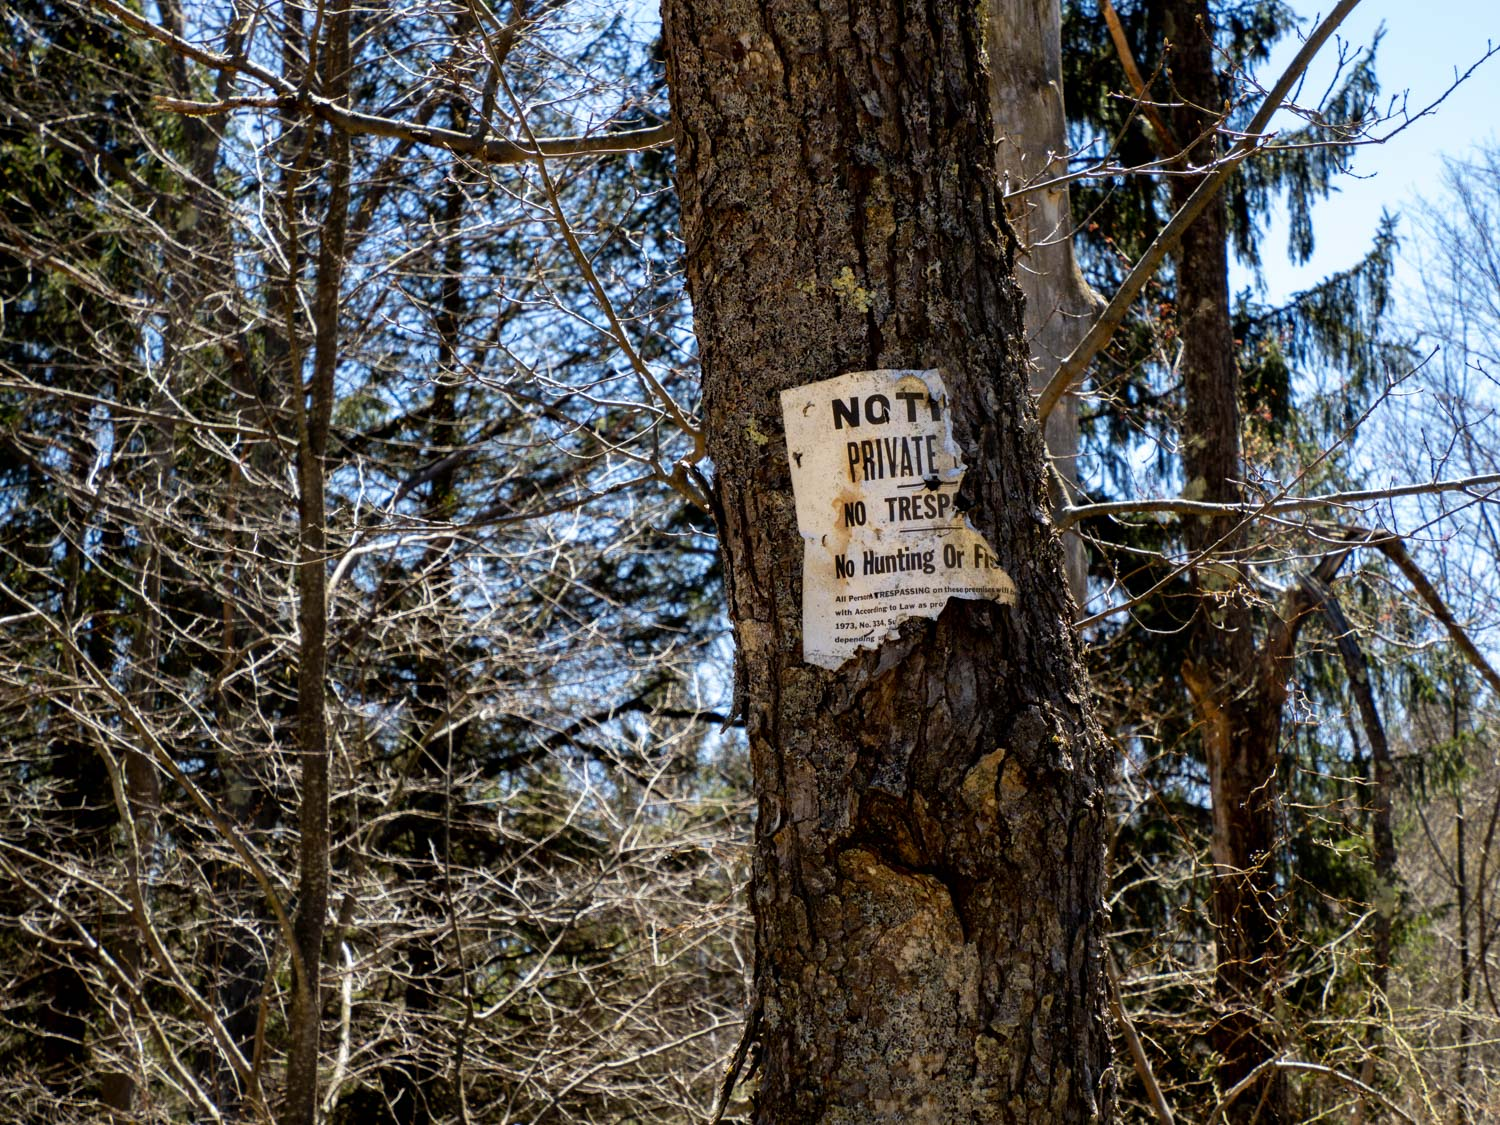 One of many NO TRESPASSING signs marking the boundaries of the Pinchot State Forest.